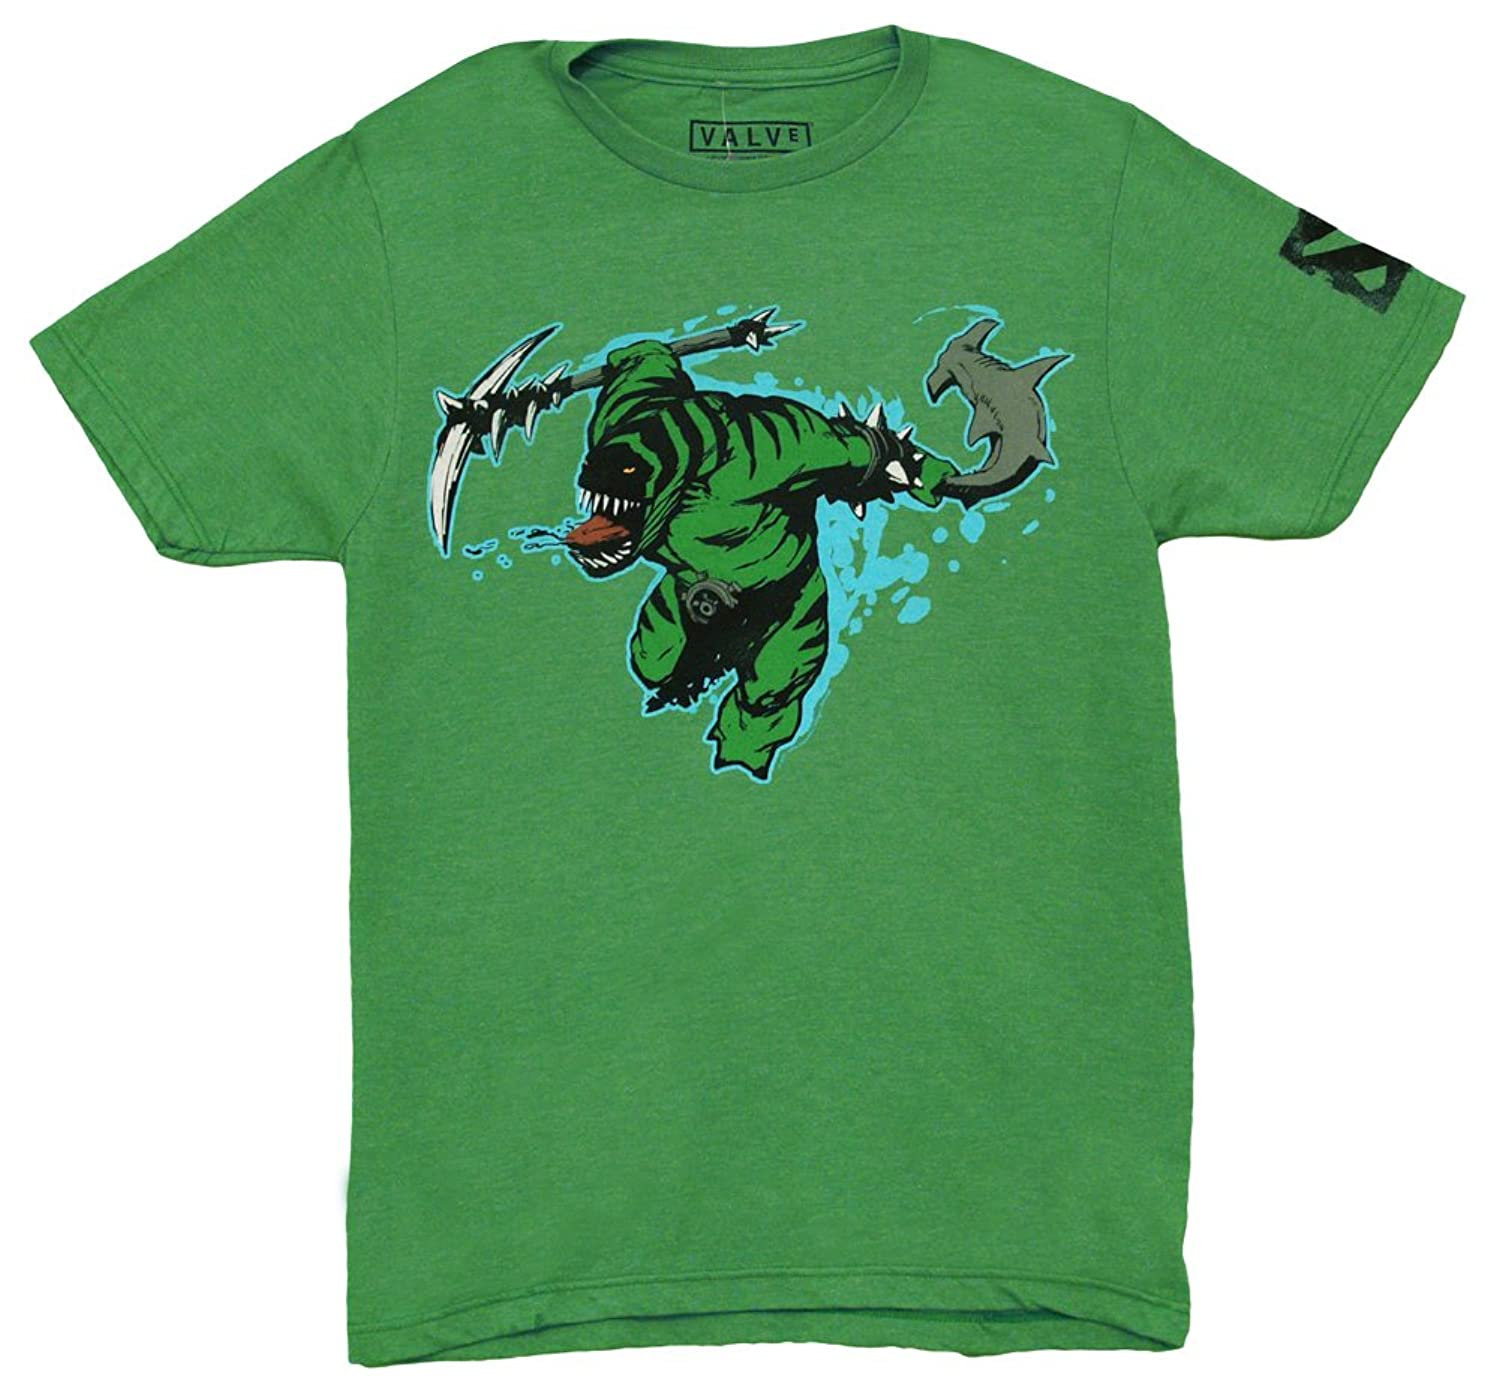 Dota 2 Tidehunter Shirt Amazon.com Dota 2 Tidehunter